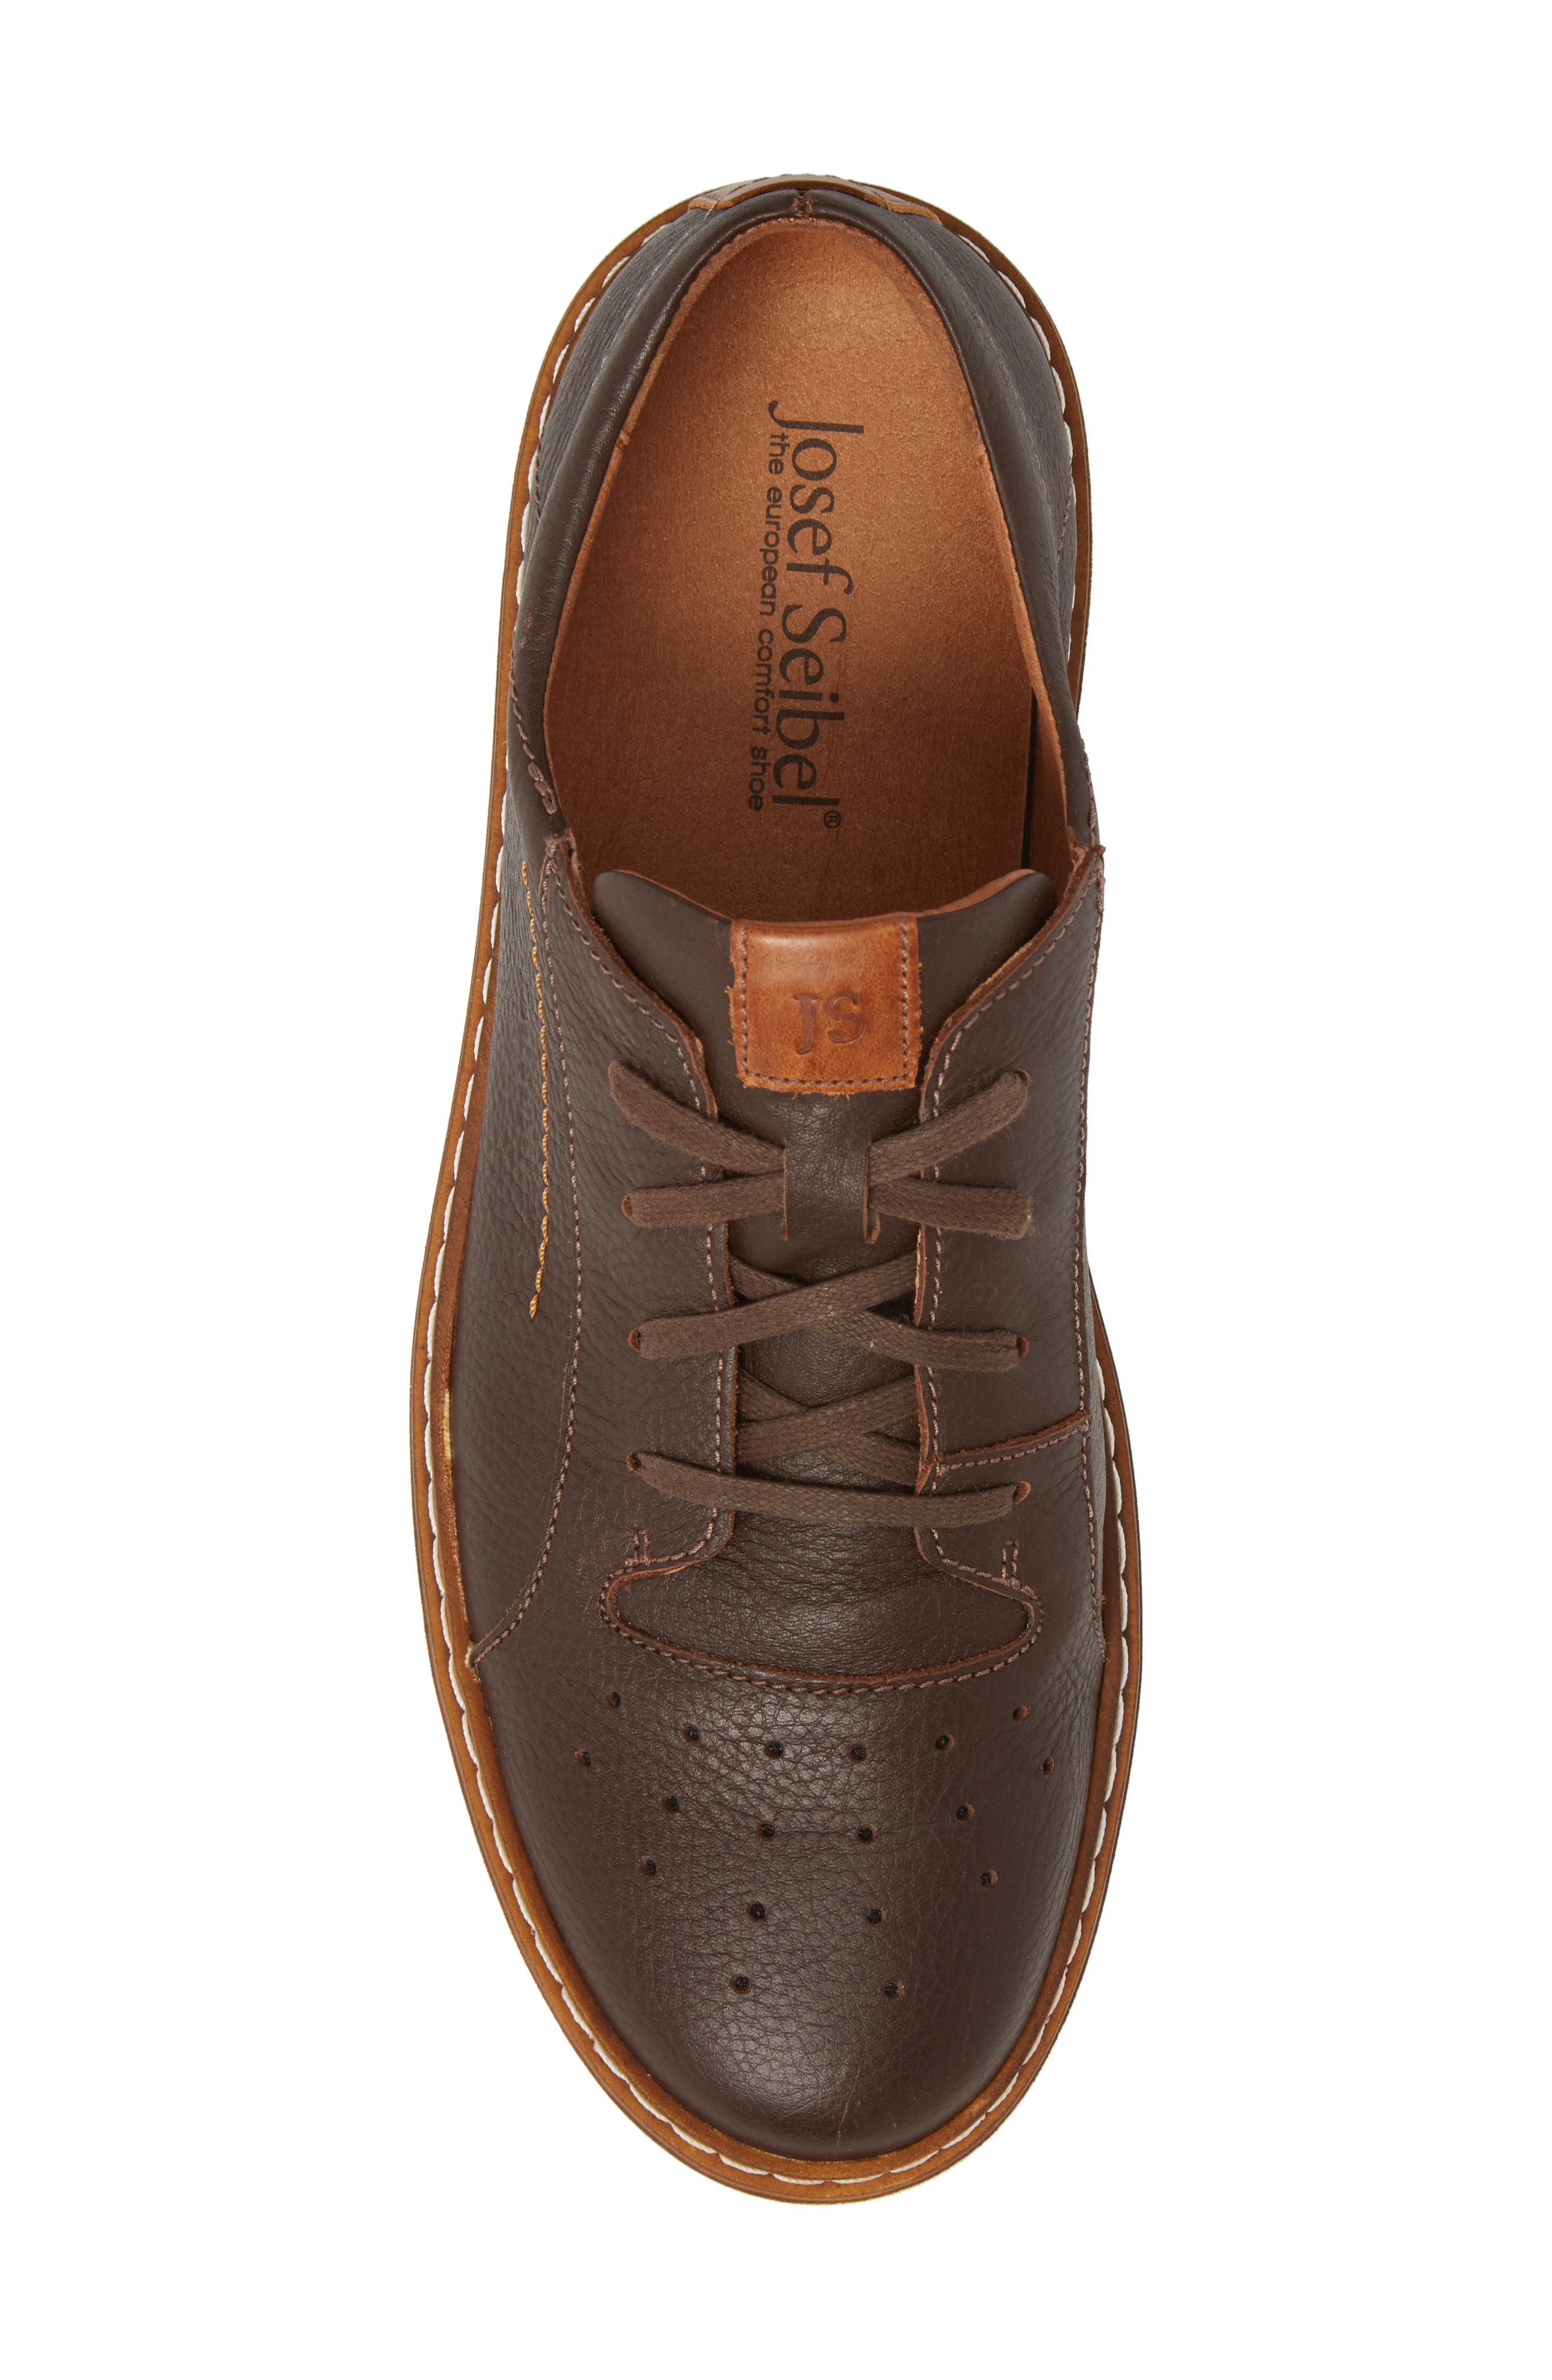 Quentin 03 Low Top Sneaker,                             Alternate thumbnail 5, color,                             Brown Kombi Leather